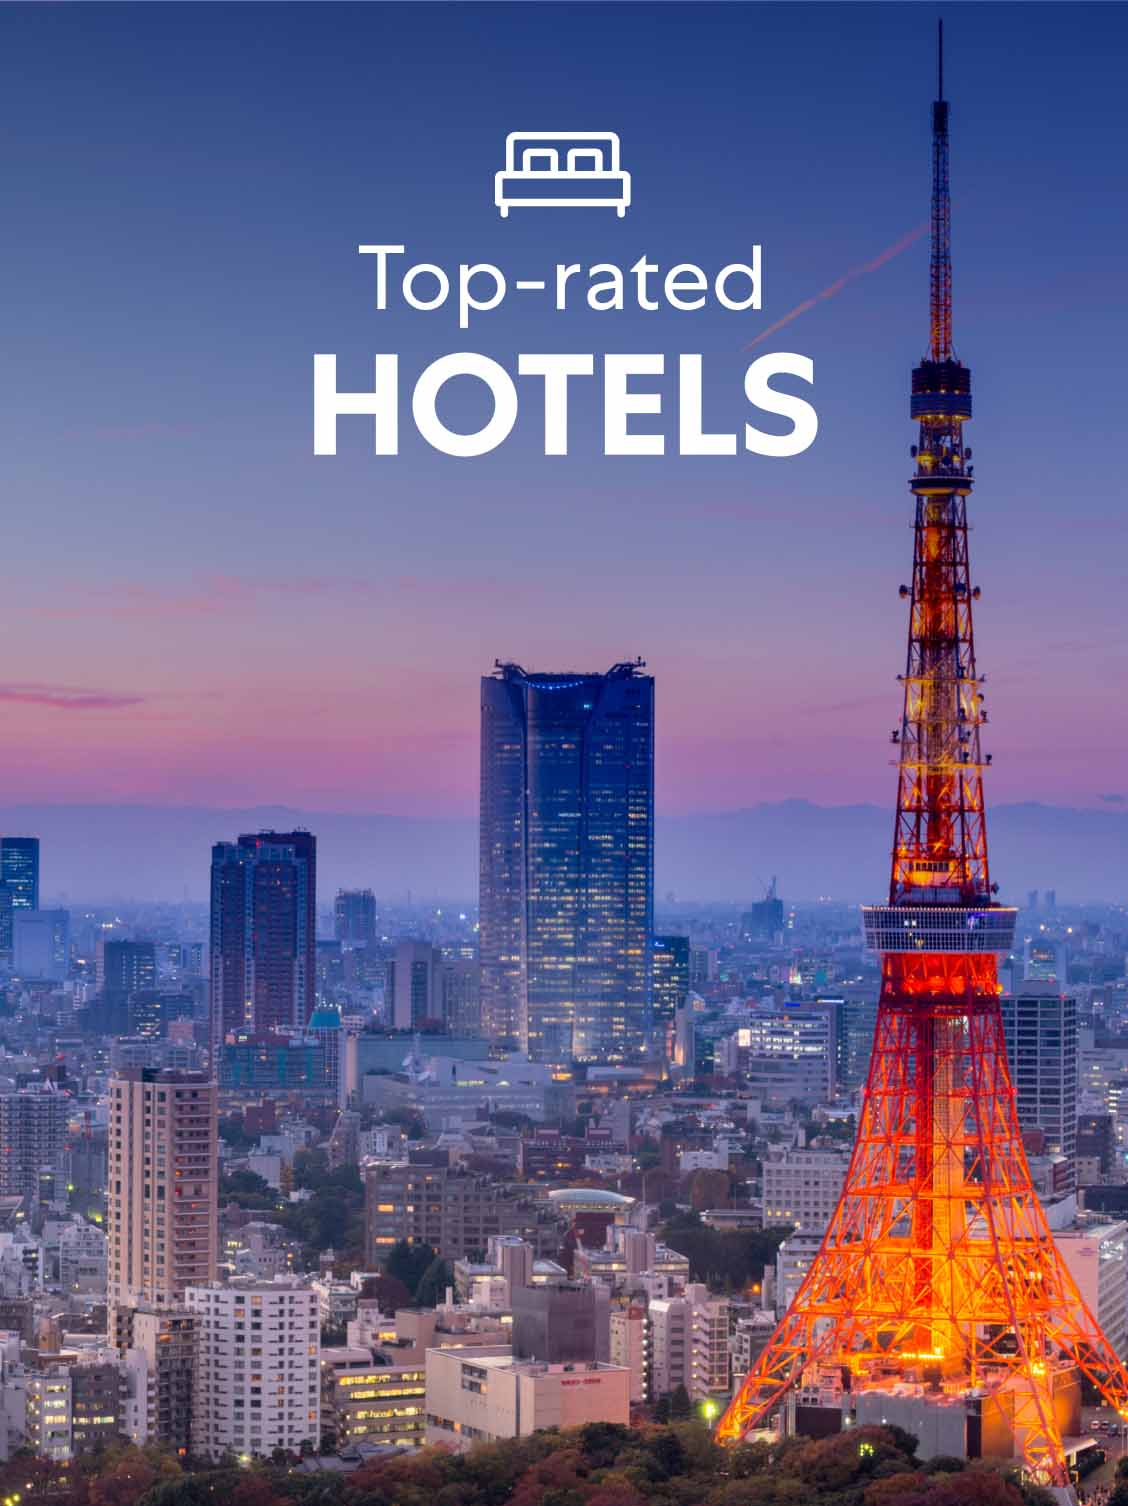 Aerial view of Tokyo, Japan at night, with the Tokyo Tower in the foreground. A superimposed title reads: Top-rated hotels.